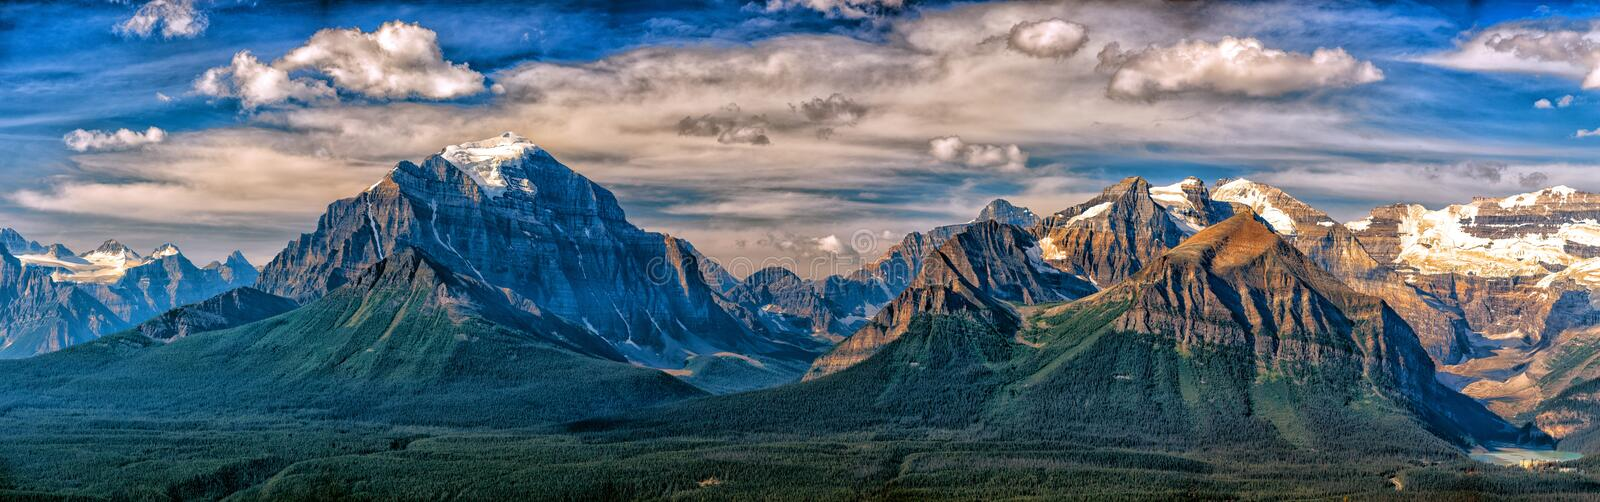 Canada Stock Images - Download 375,157 Royalty Free Photos